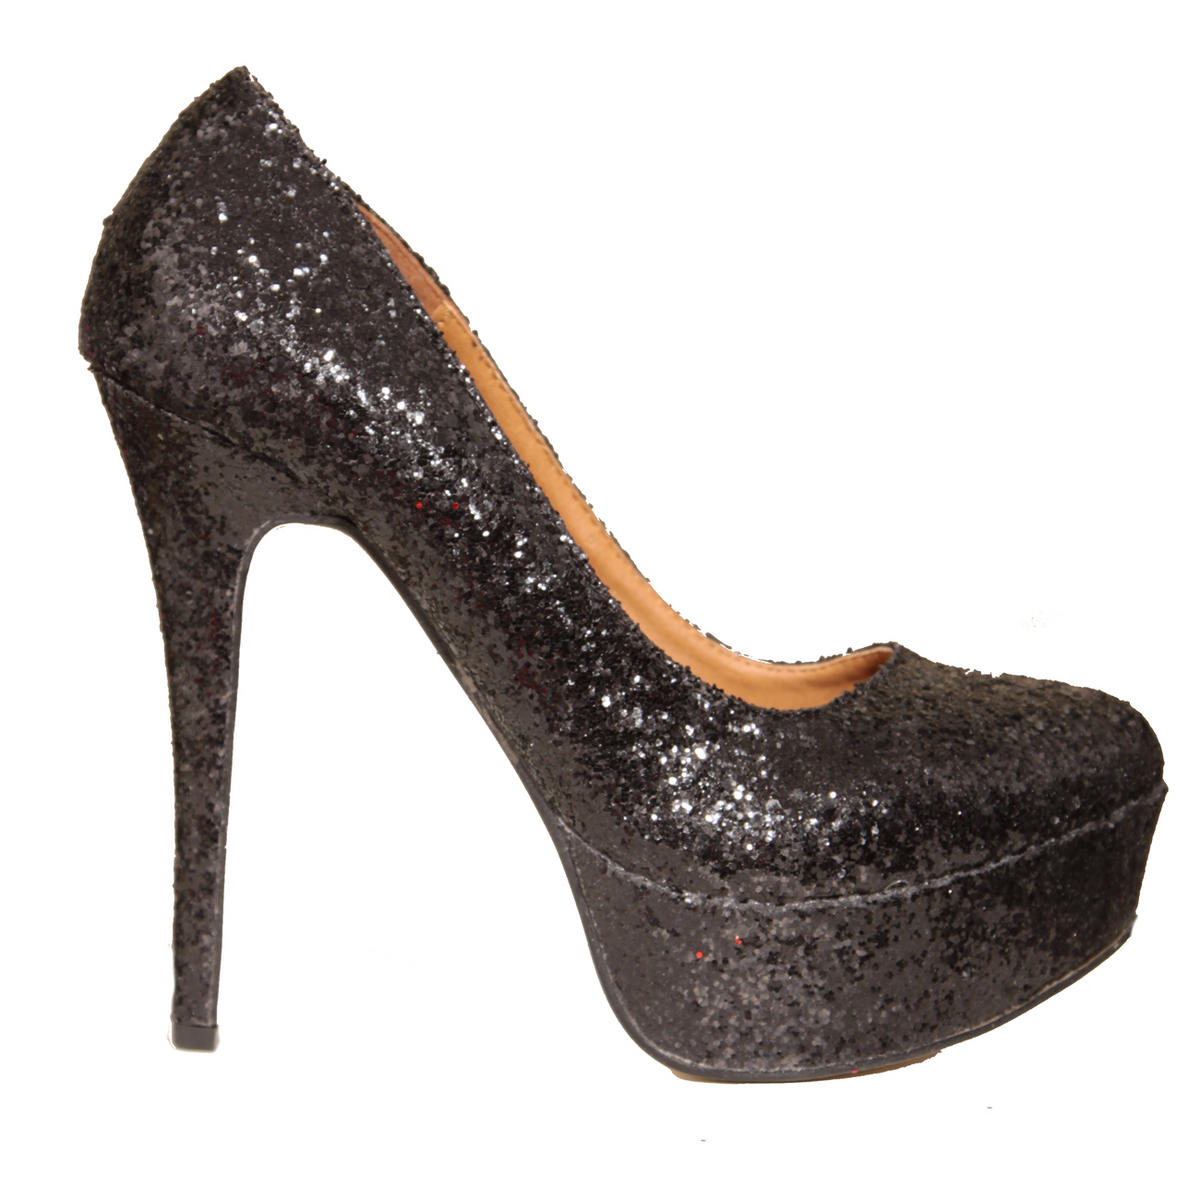 Black Glitter Platform Shoe Preview